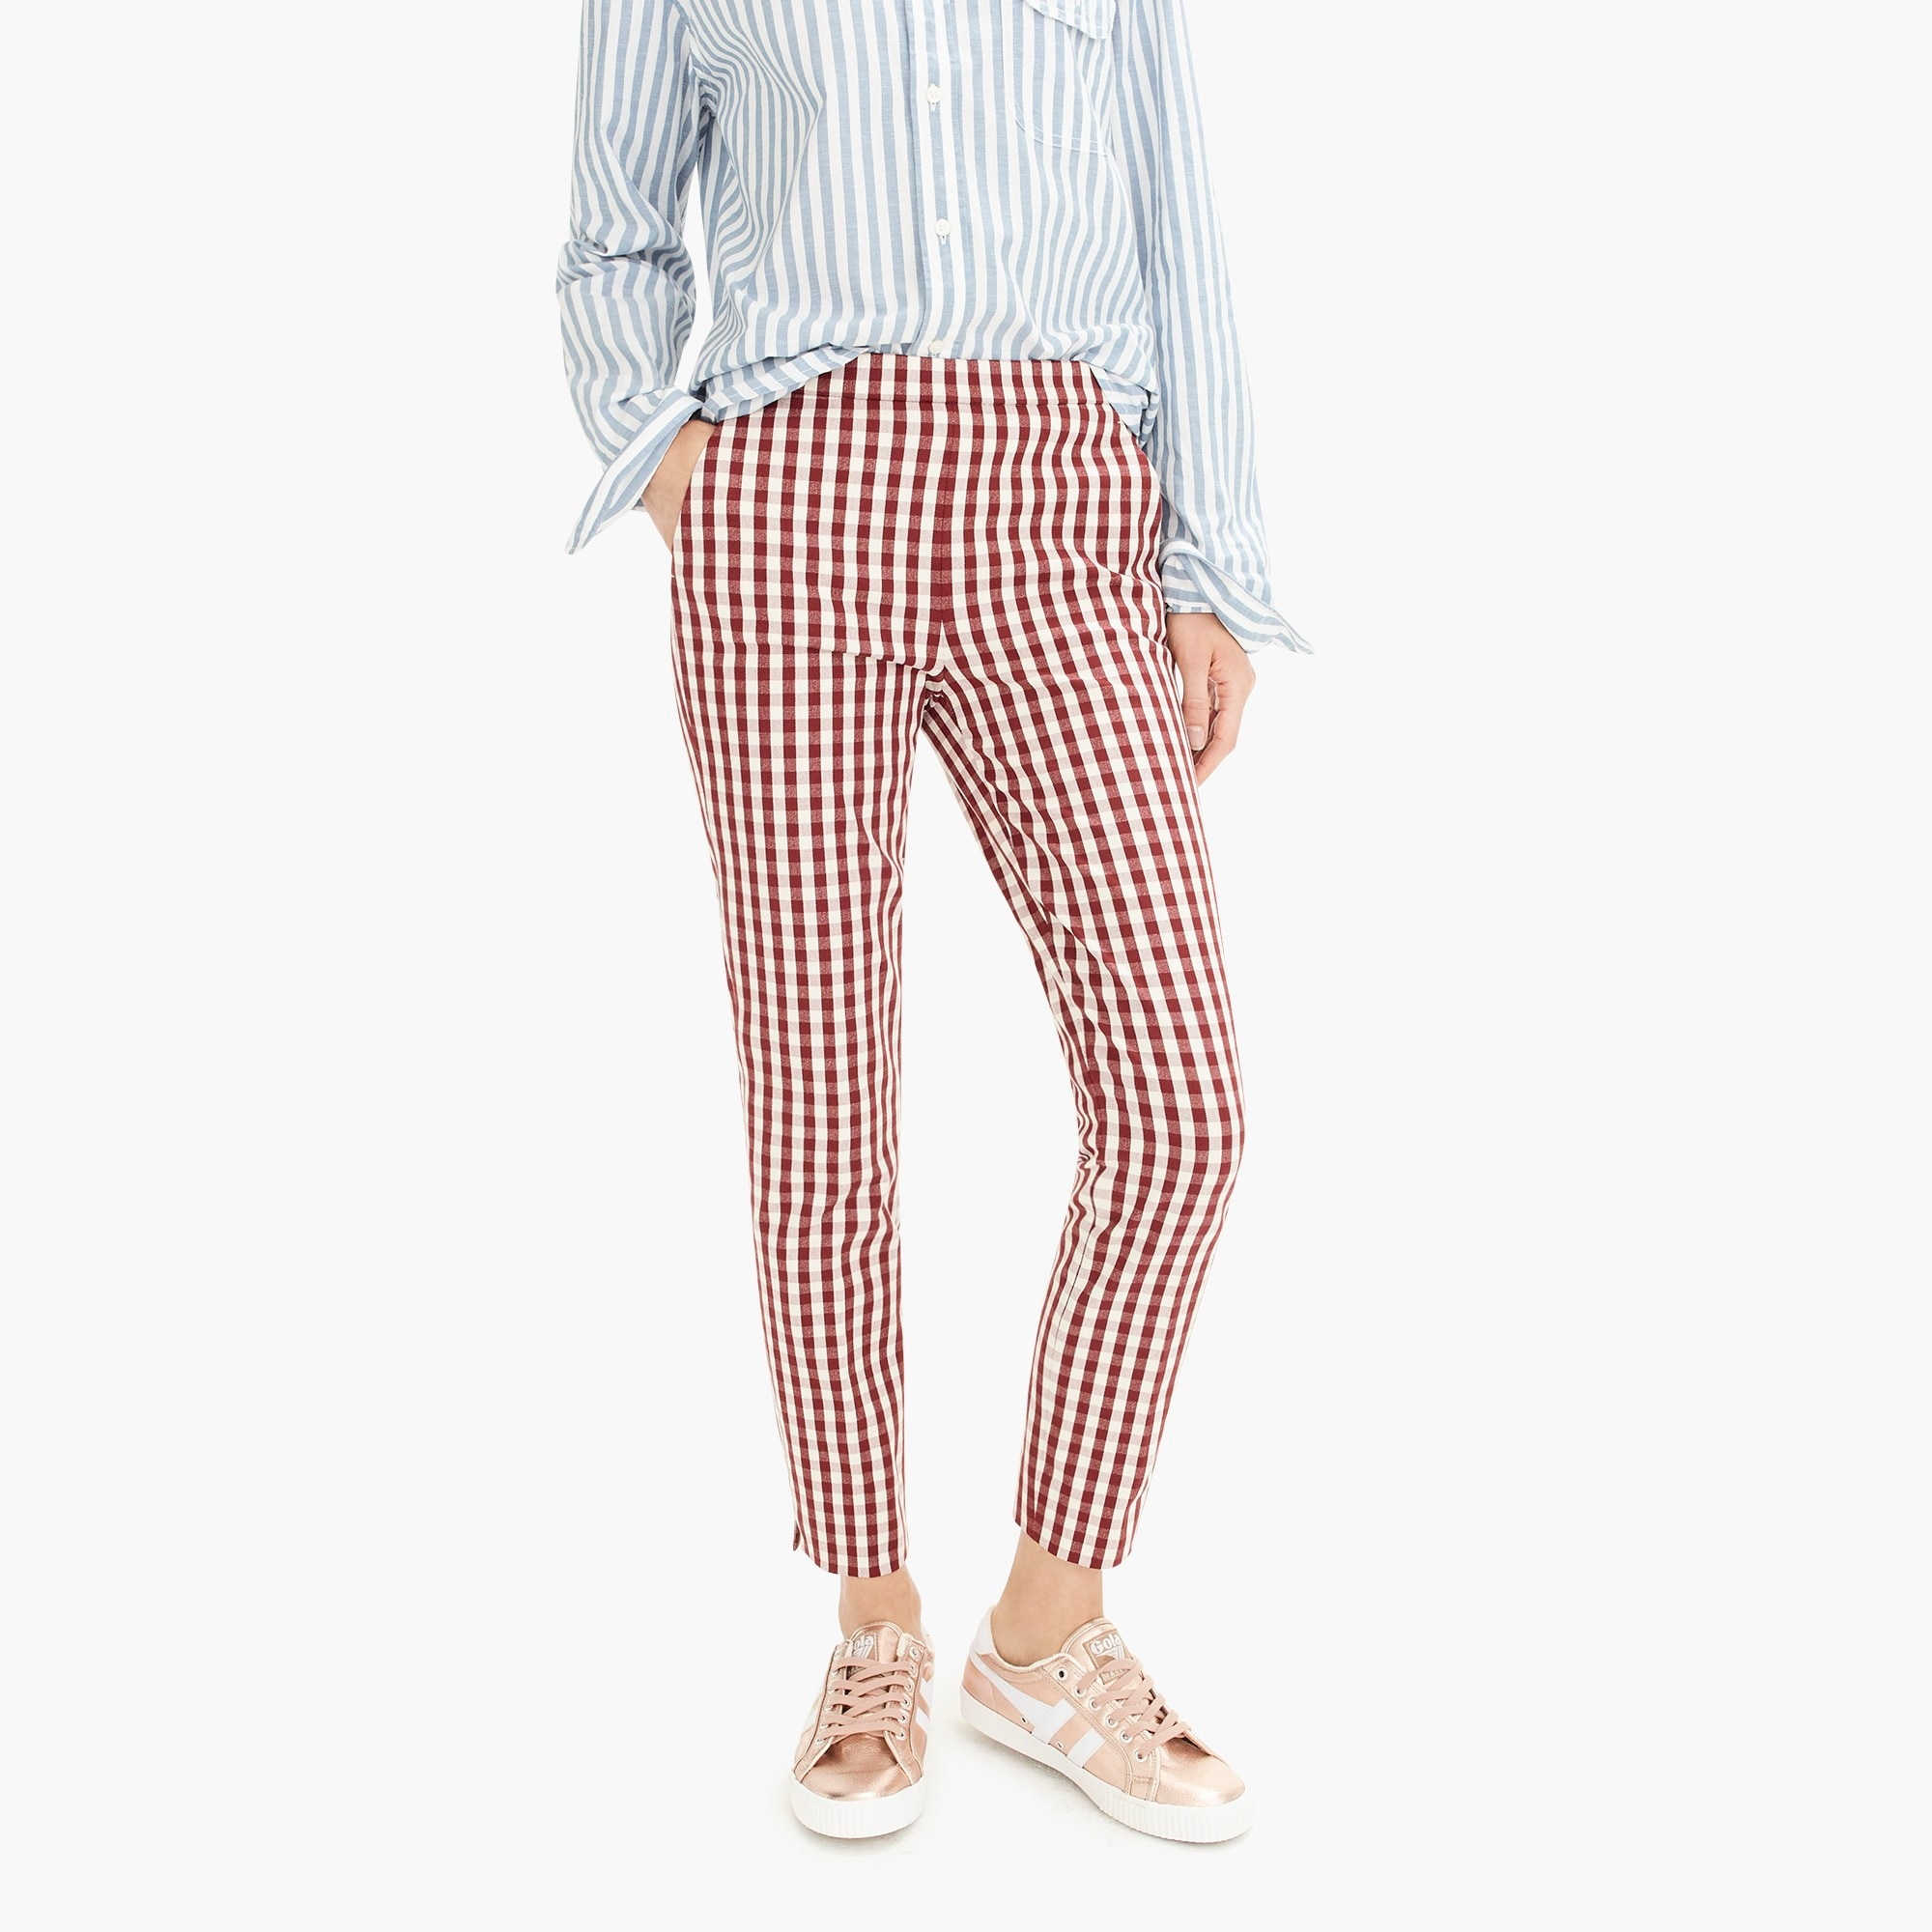 Image 1 for Petite Martie pant in gingham